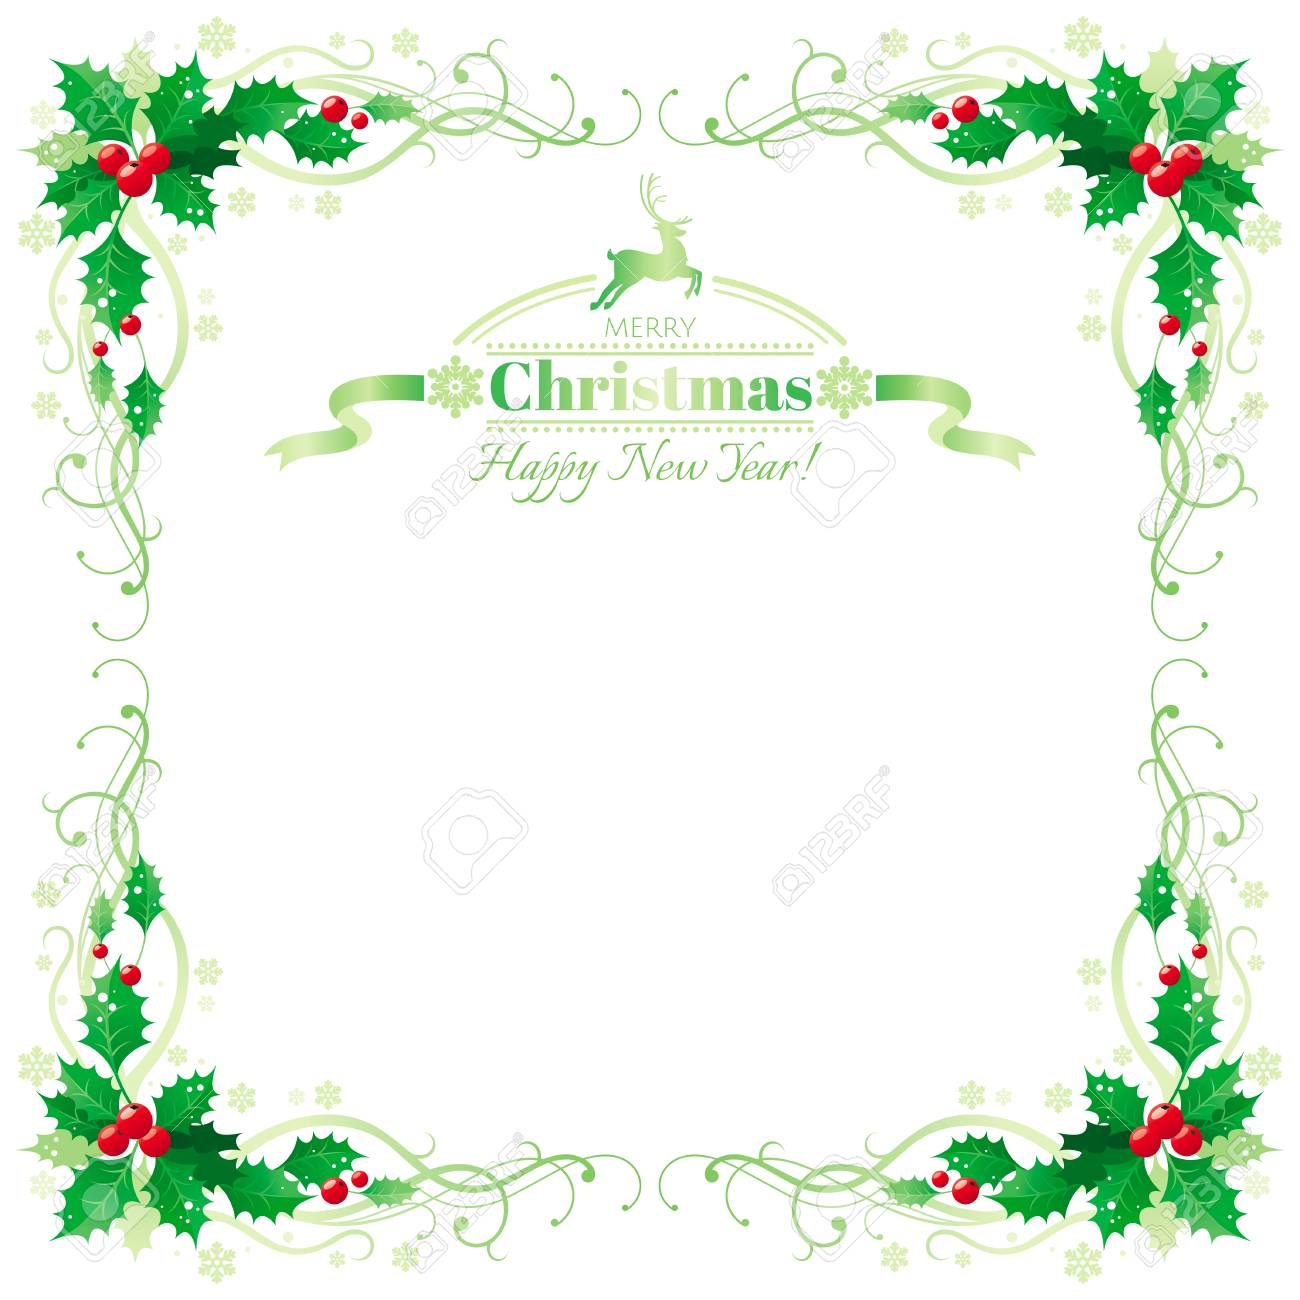 Merry Christmas and Happy new Year border frame with holly berry...